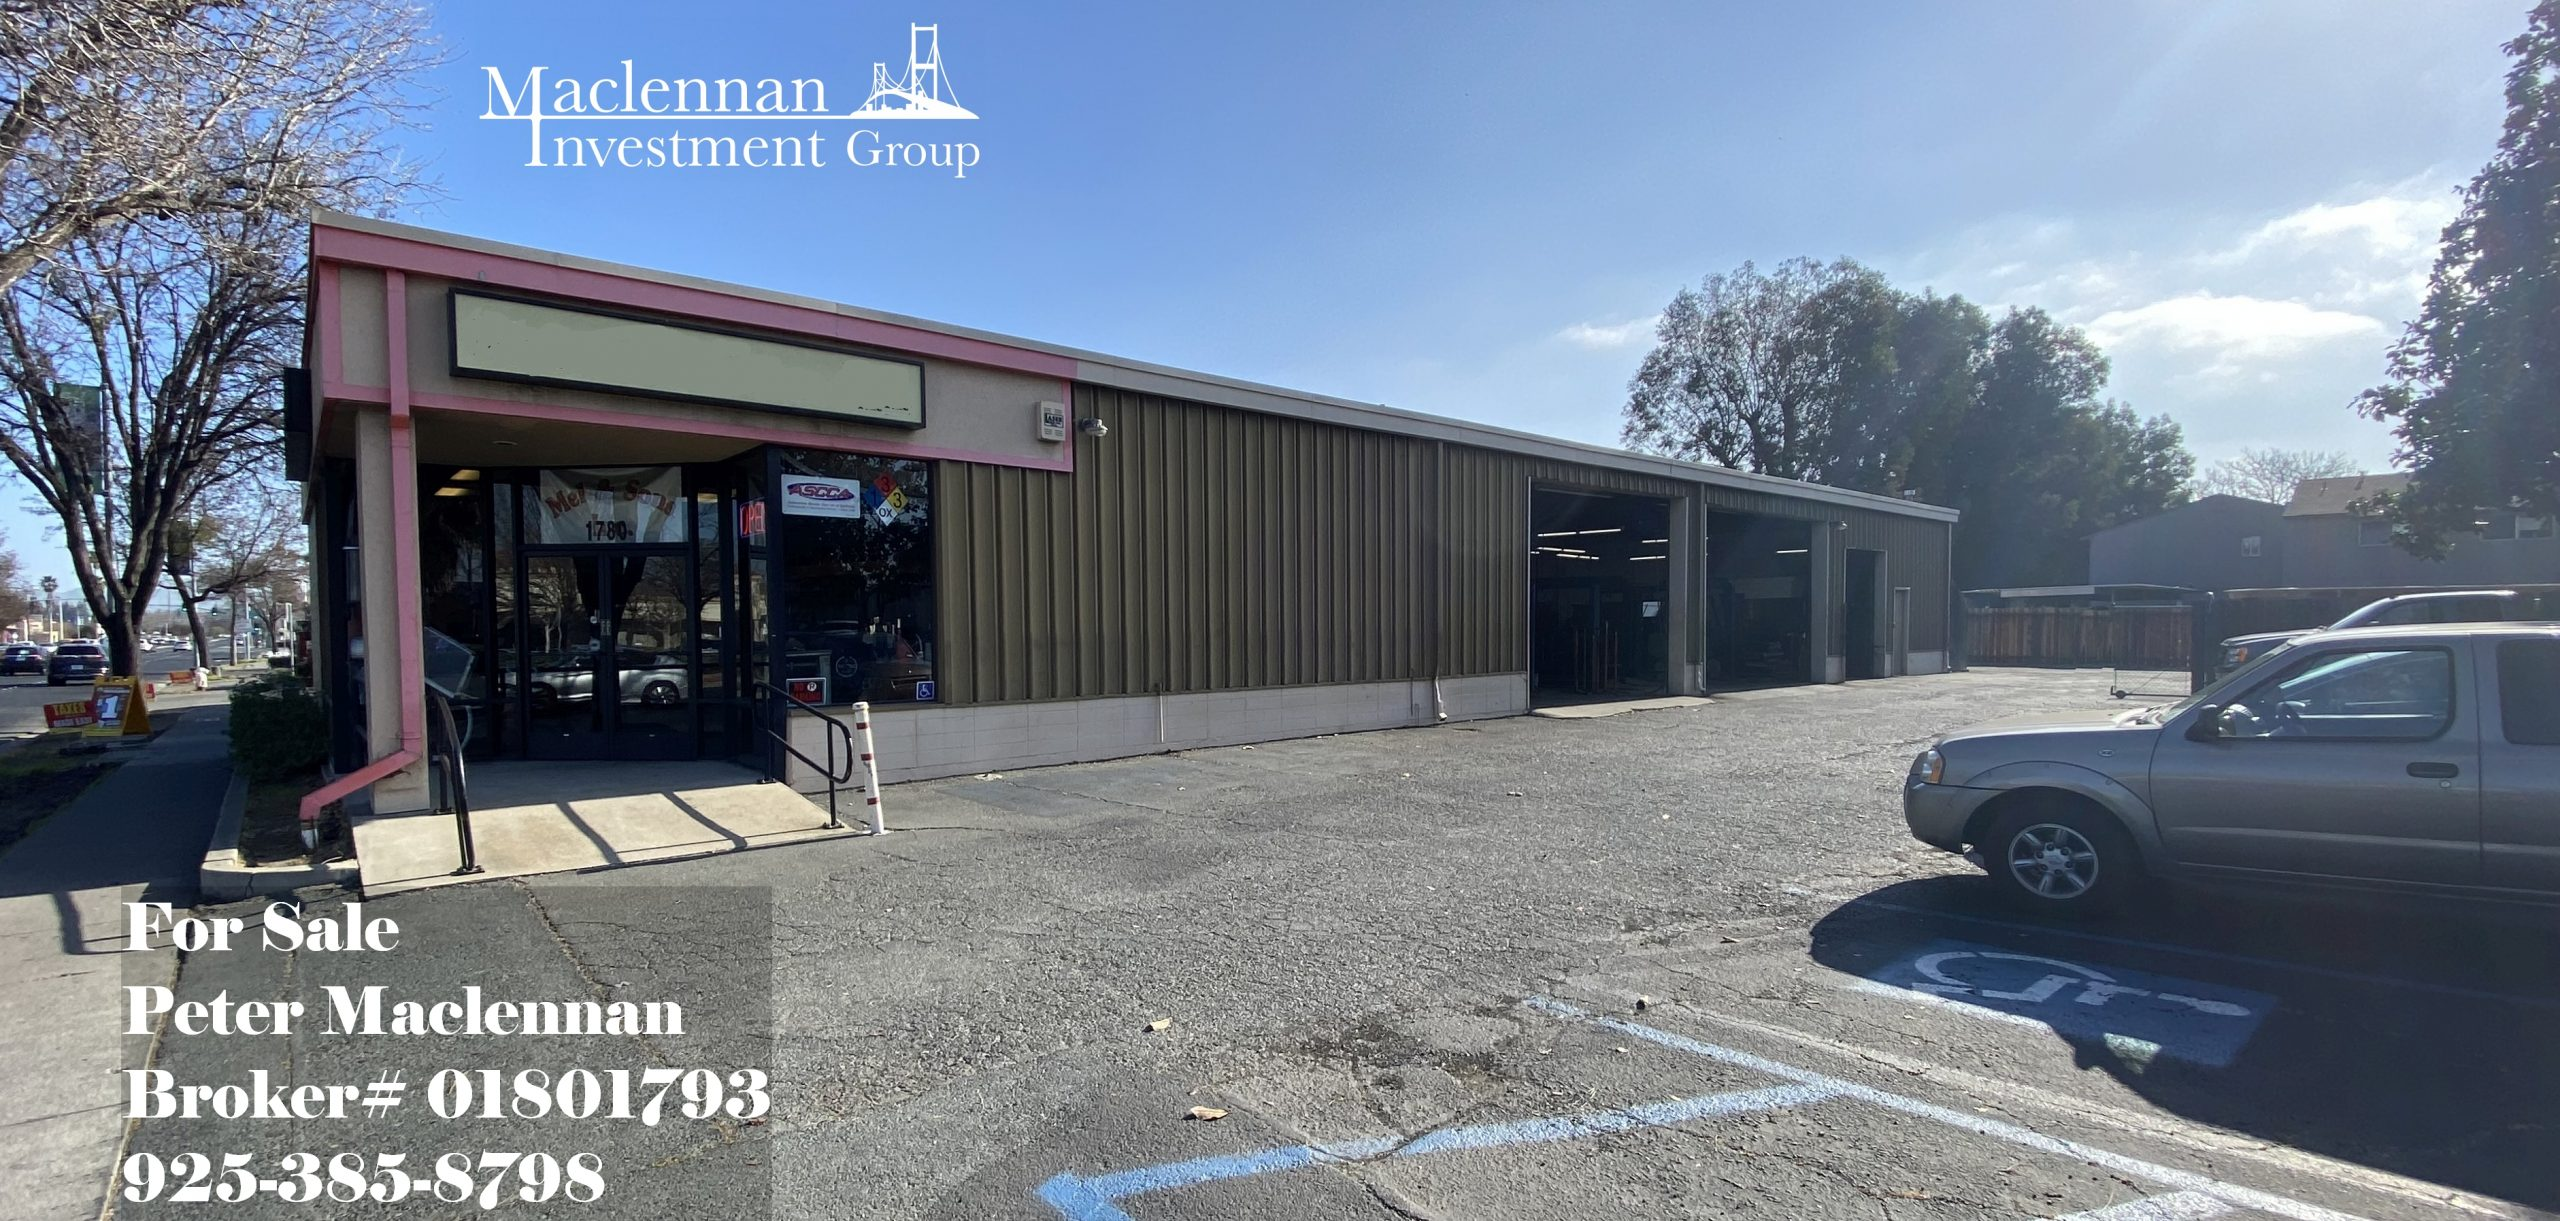 For Sale Building by Maclennan Investment Group